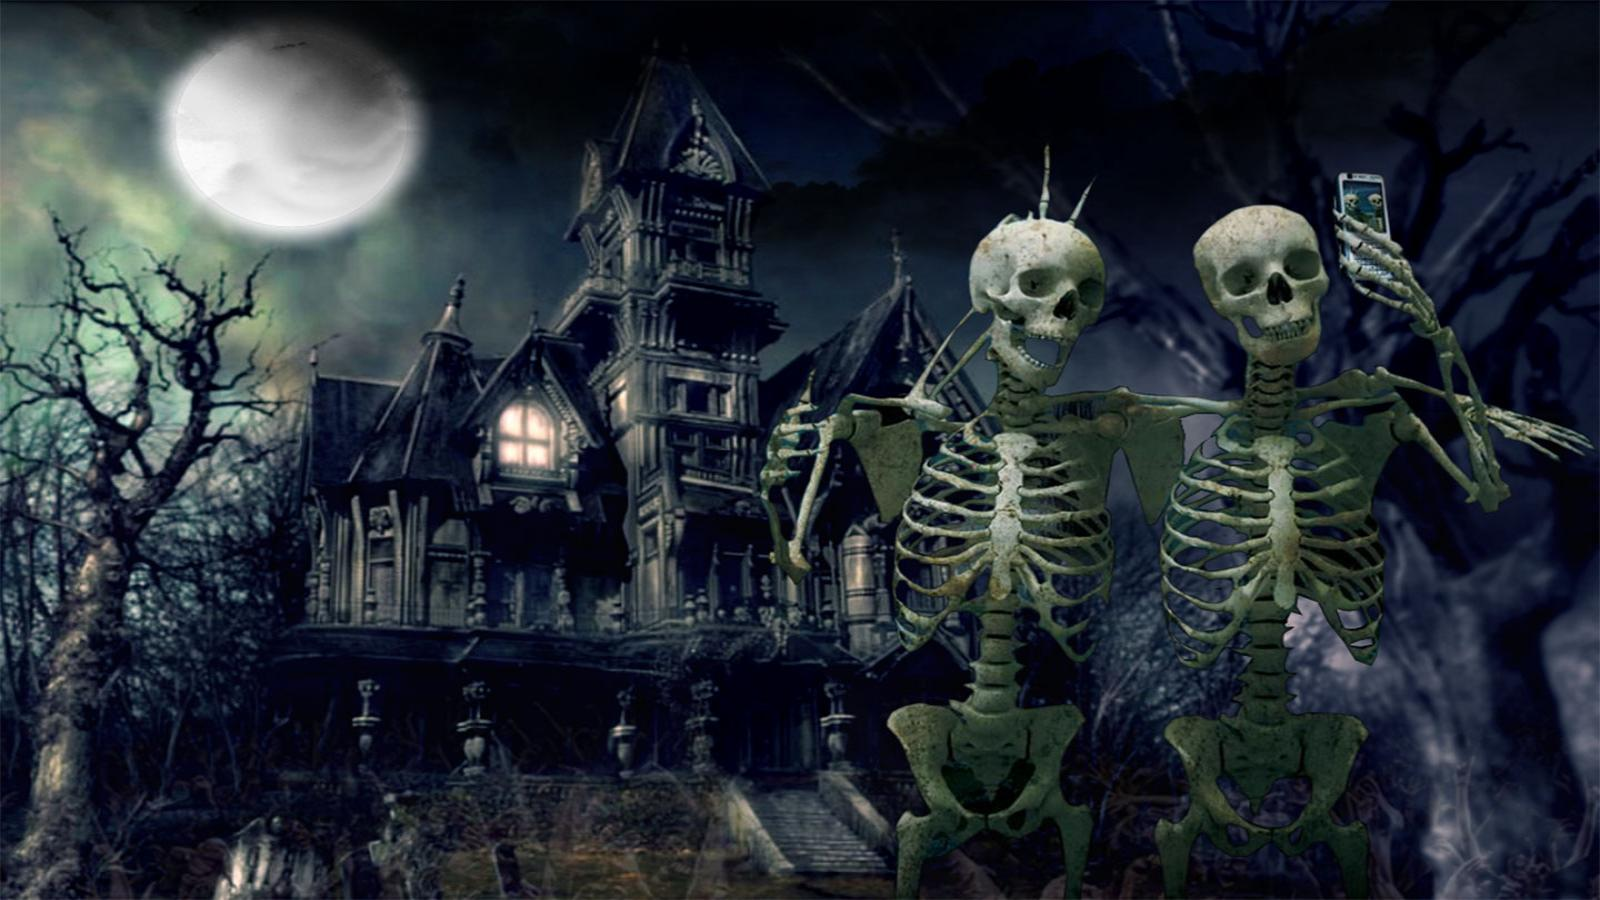 forest halloween scary pacific wallpaper at 3d wallpapers . on